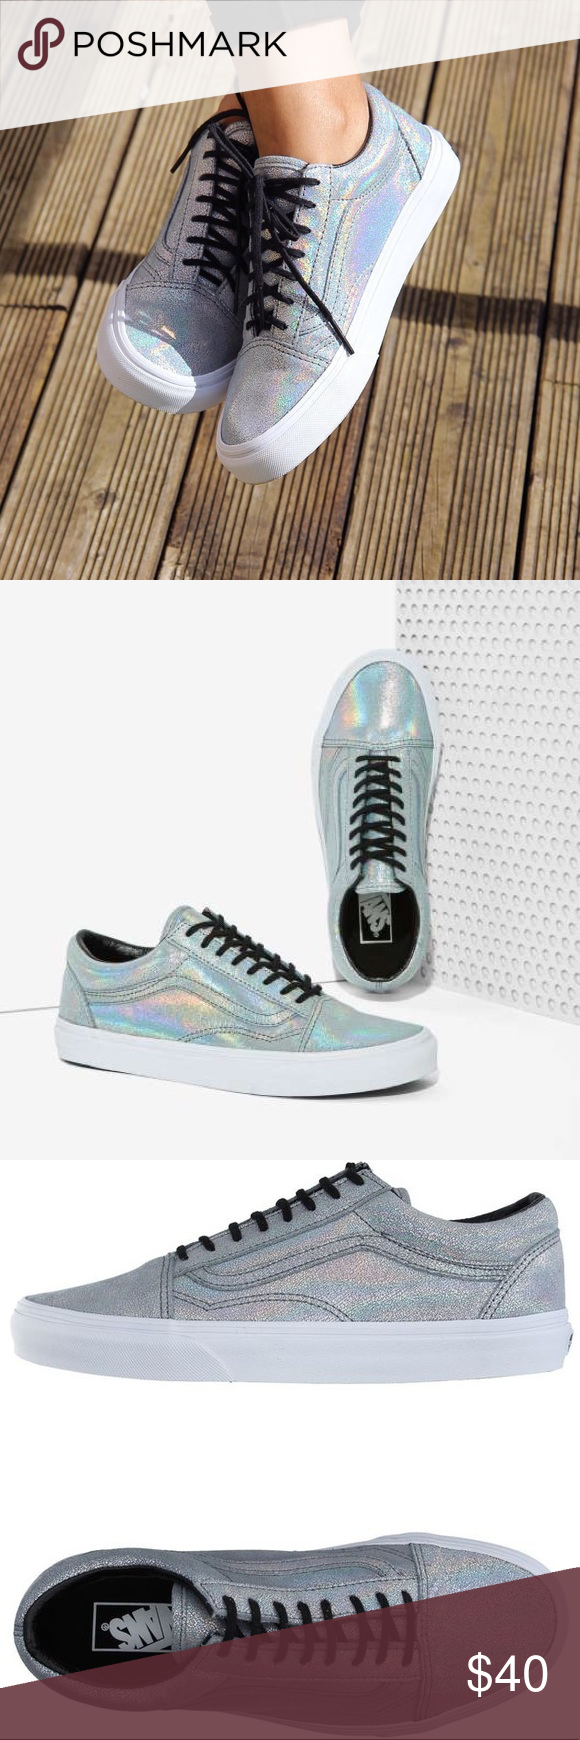 f4dcb686c3cbaa Vans Old Skool Holographic Hologram Holo Sneakers Excellent used condition.  Worn 2-3x only. Details include lace closure and